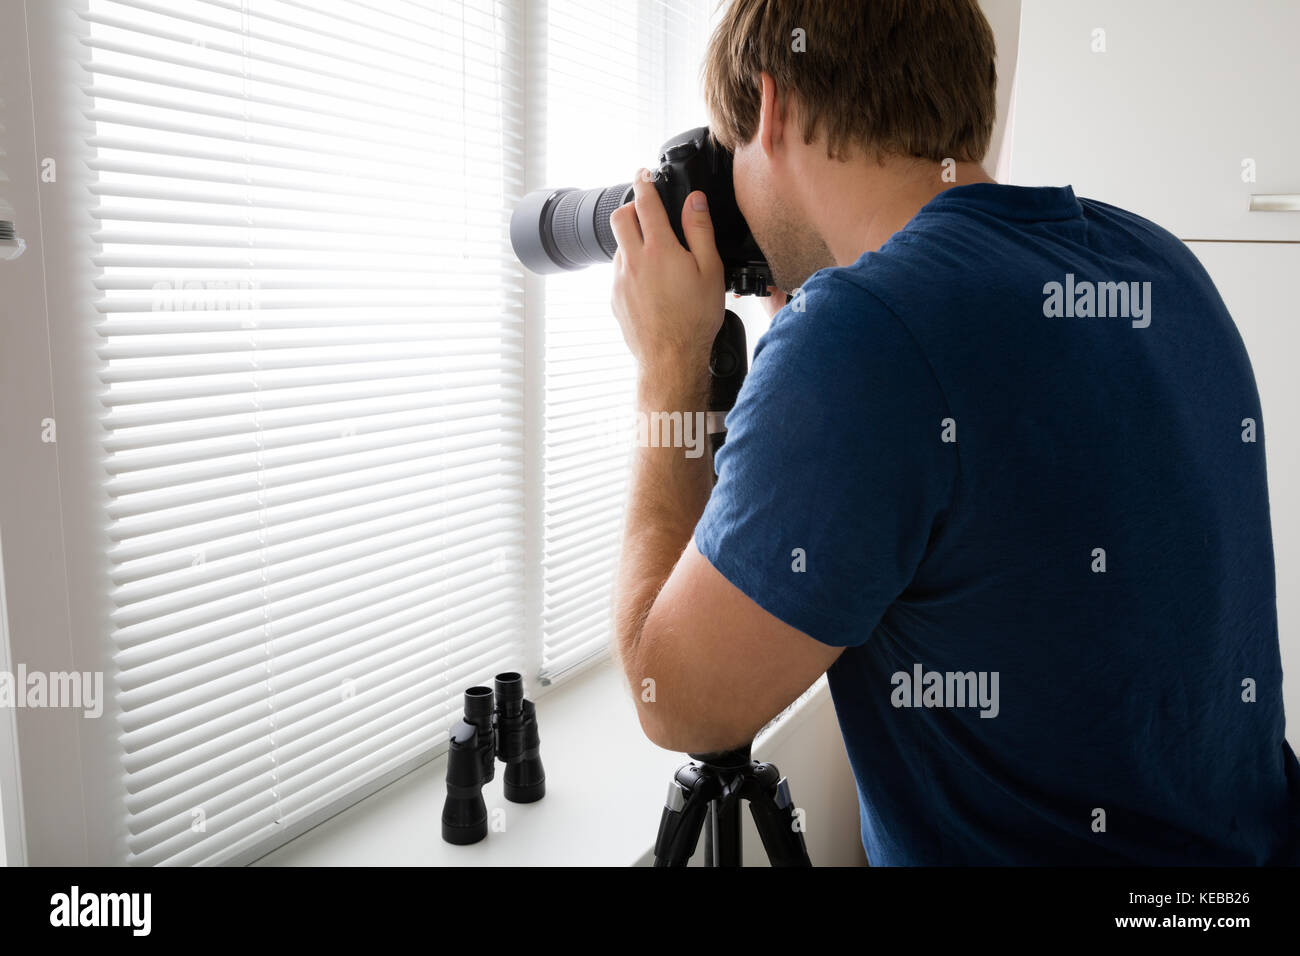 Private Detective Holding Camera Photographing Through Blinds At Home - Stock Image